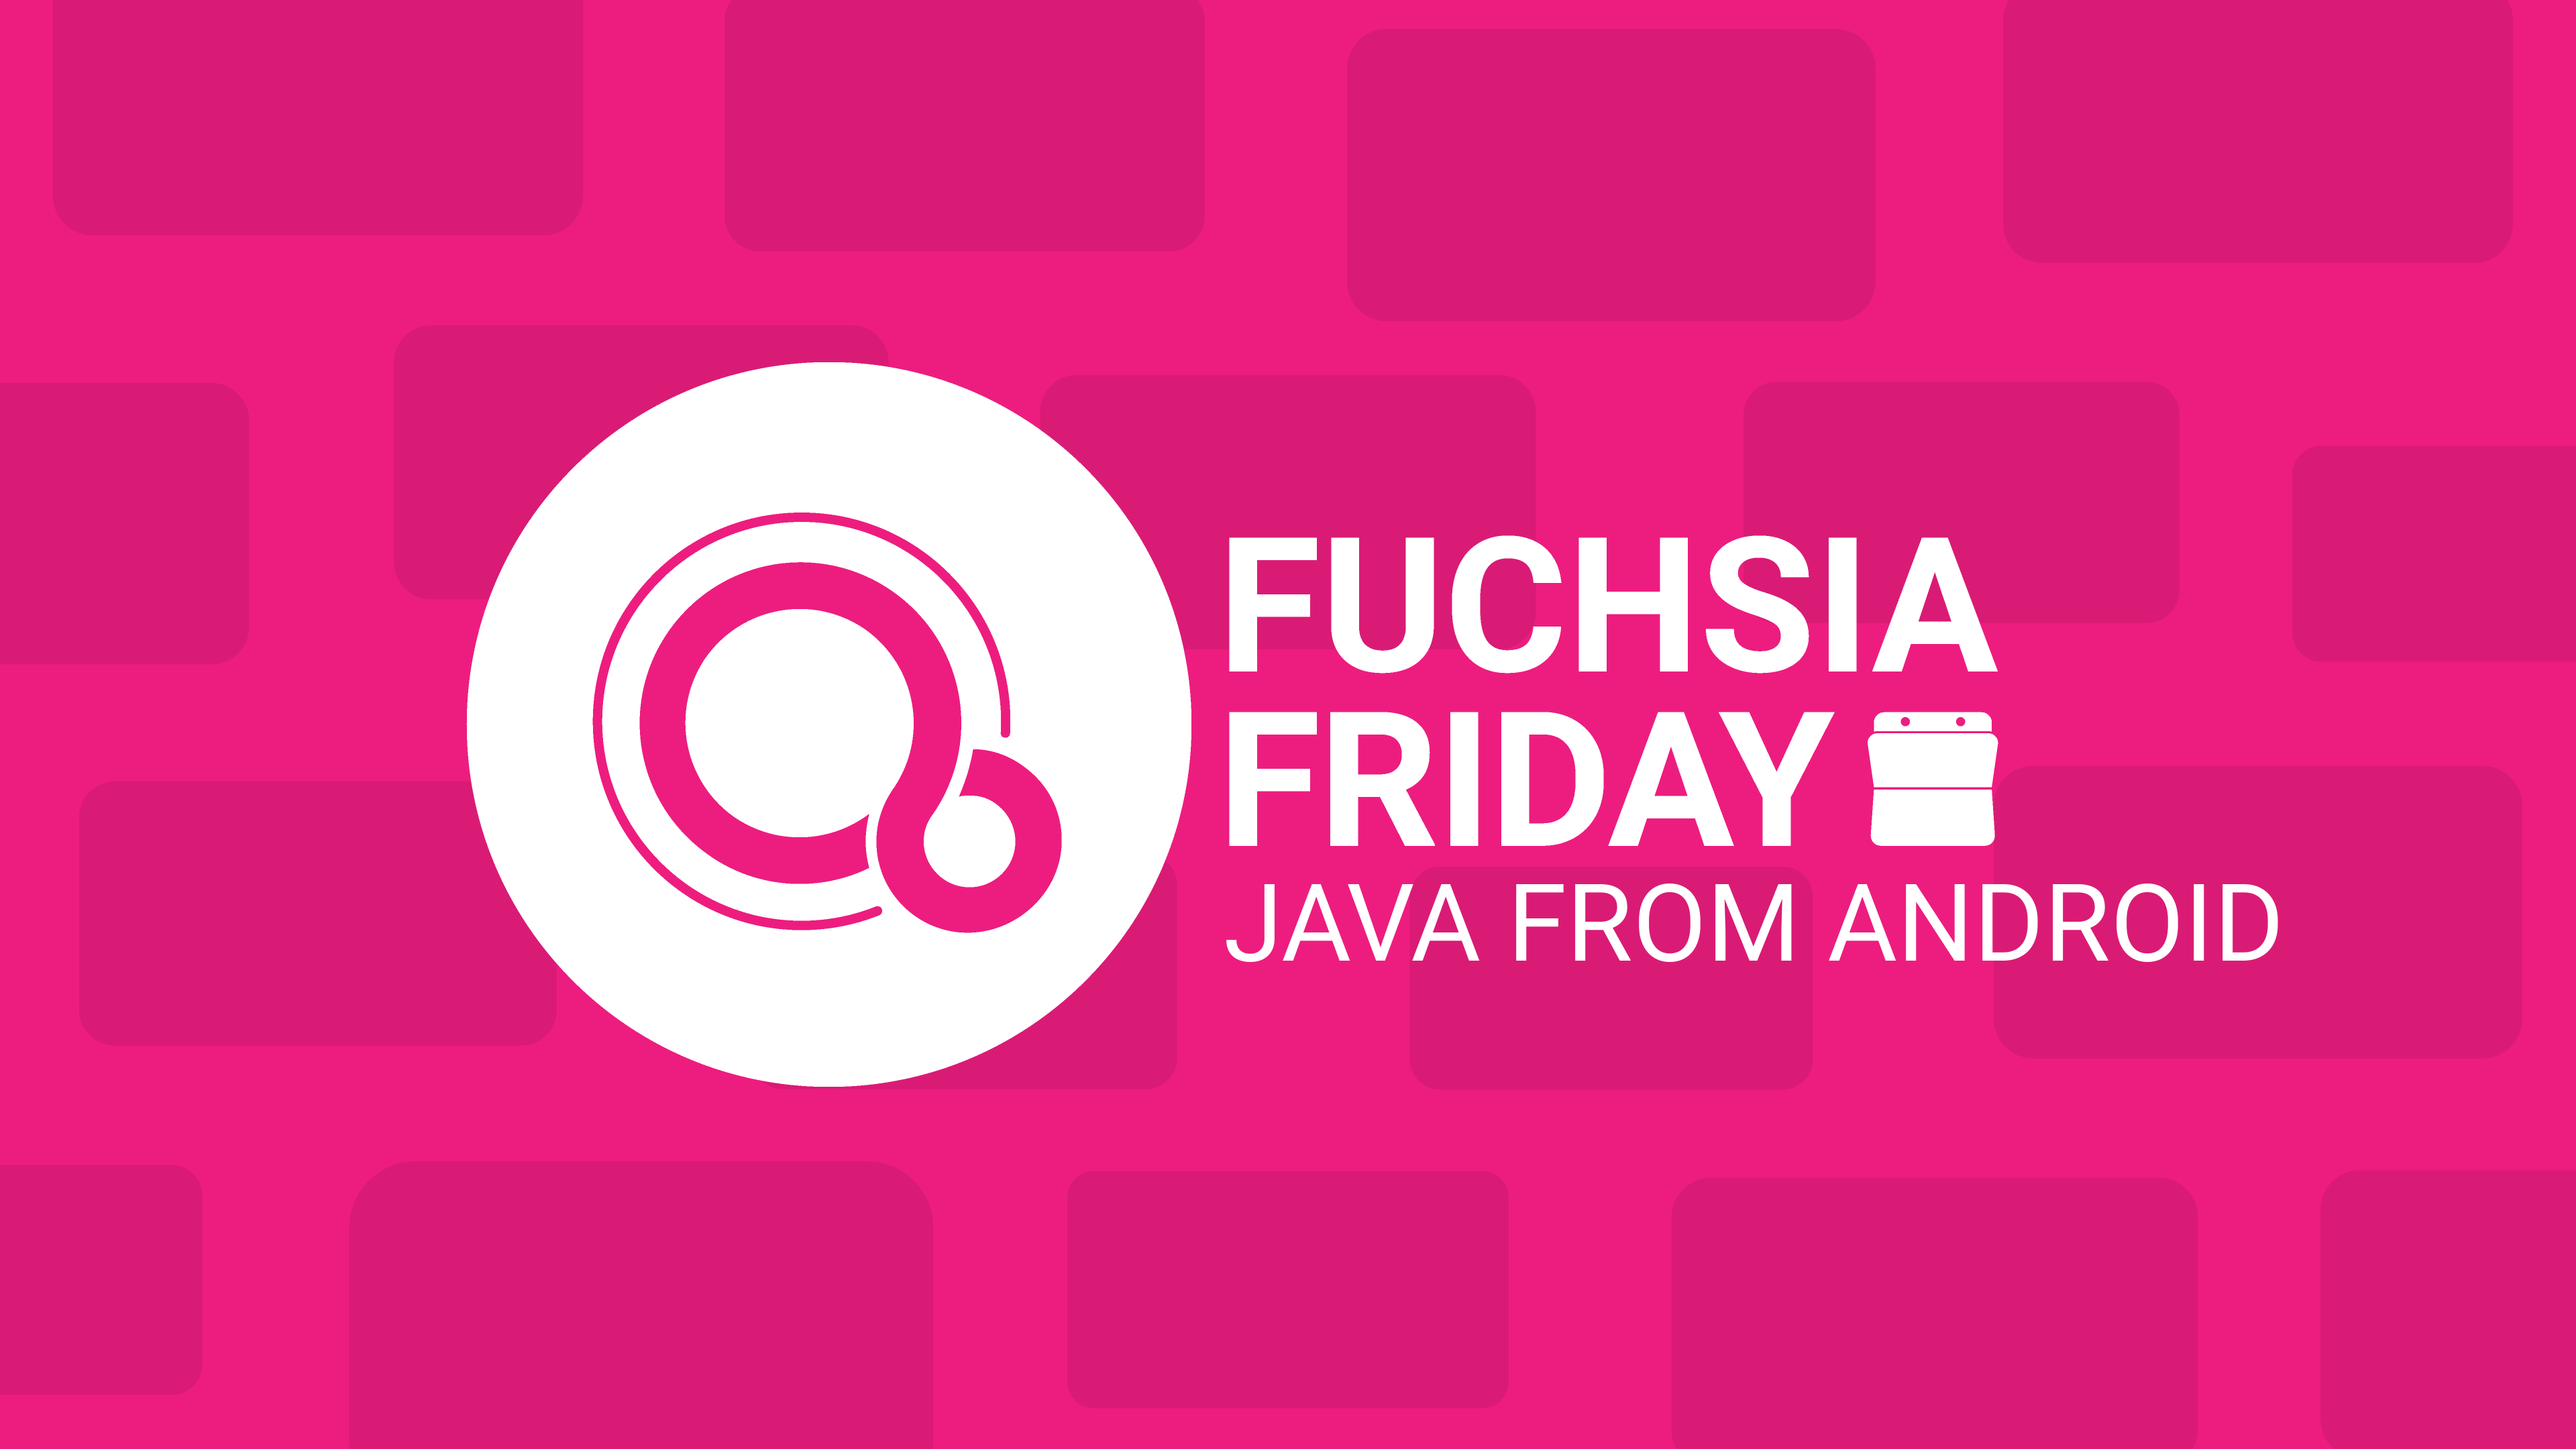 9to5google.com - Kyle Bradshaw - Fuchsia Friday: Fuchsia is gaining support for Java - by borrowing from Android